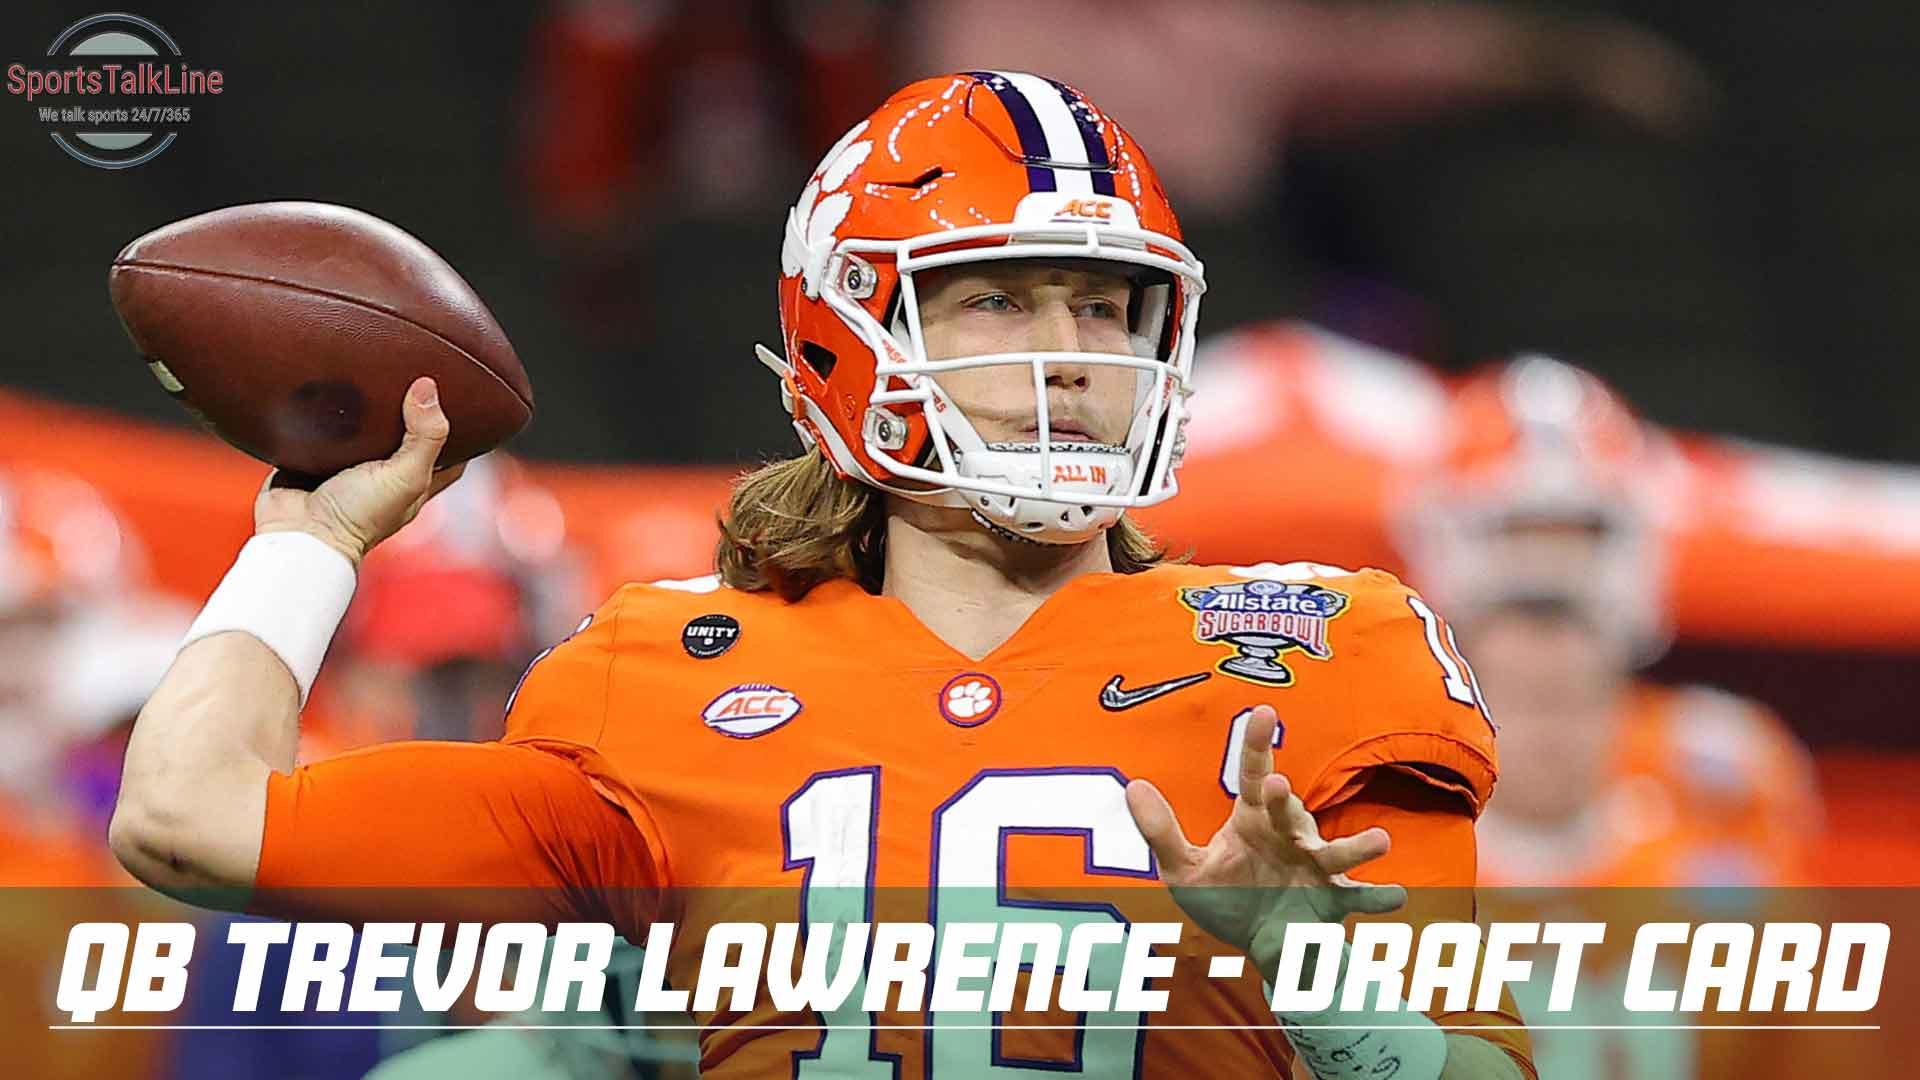 QB Trevor Lawrence Draft Profile